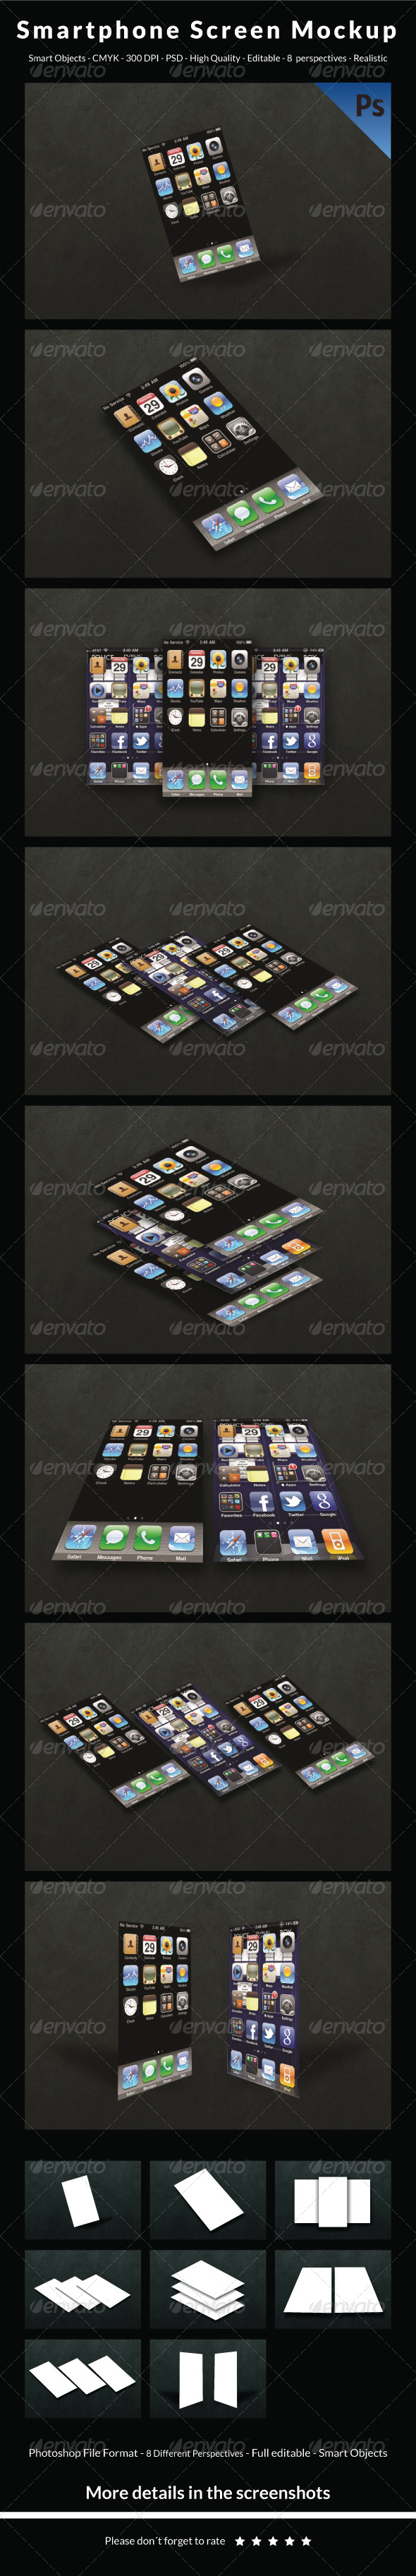 Smartphone Screen Mockup - Mobile Displays